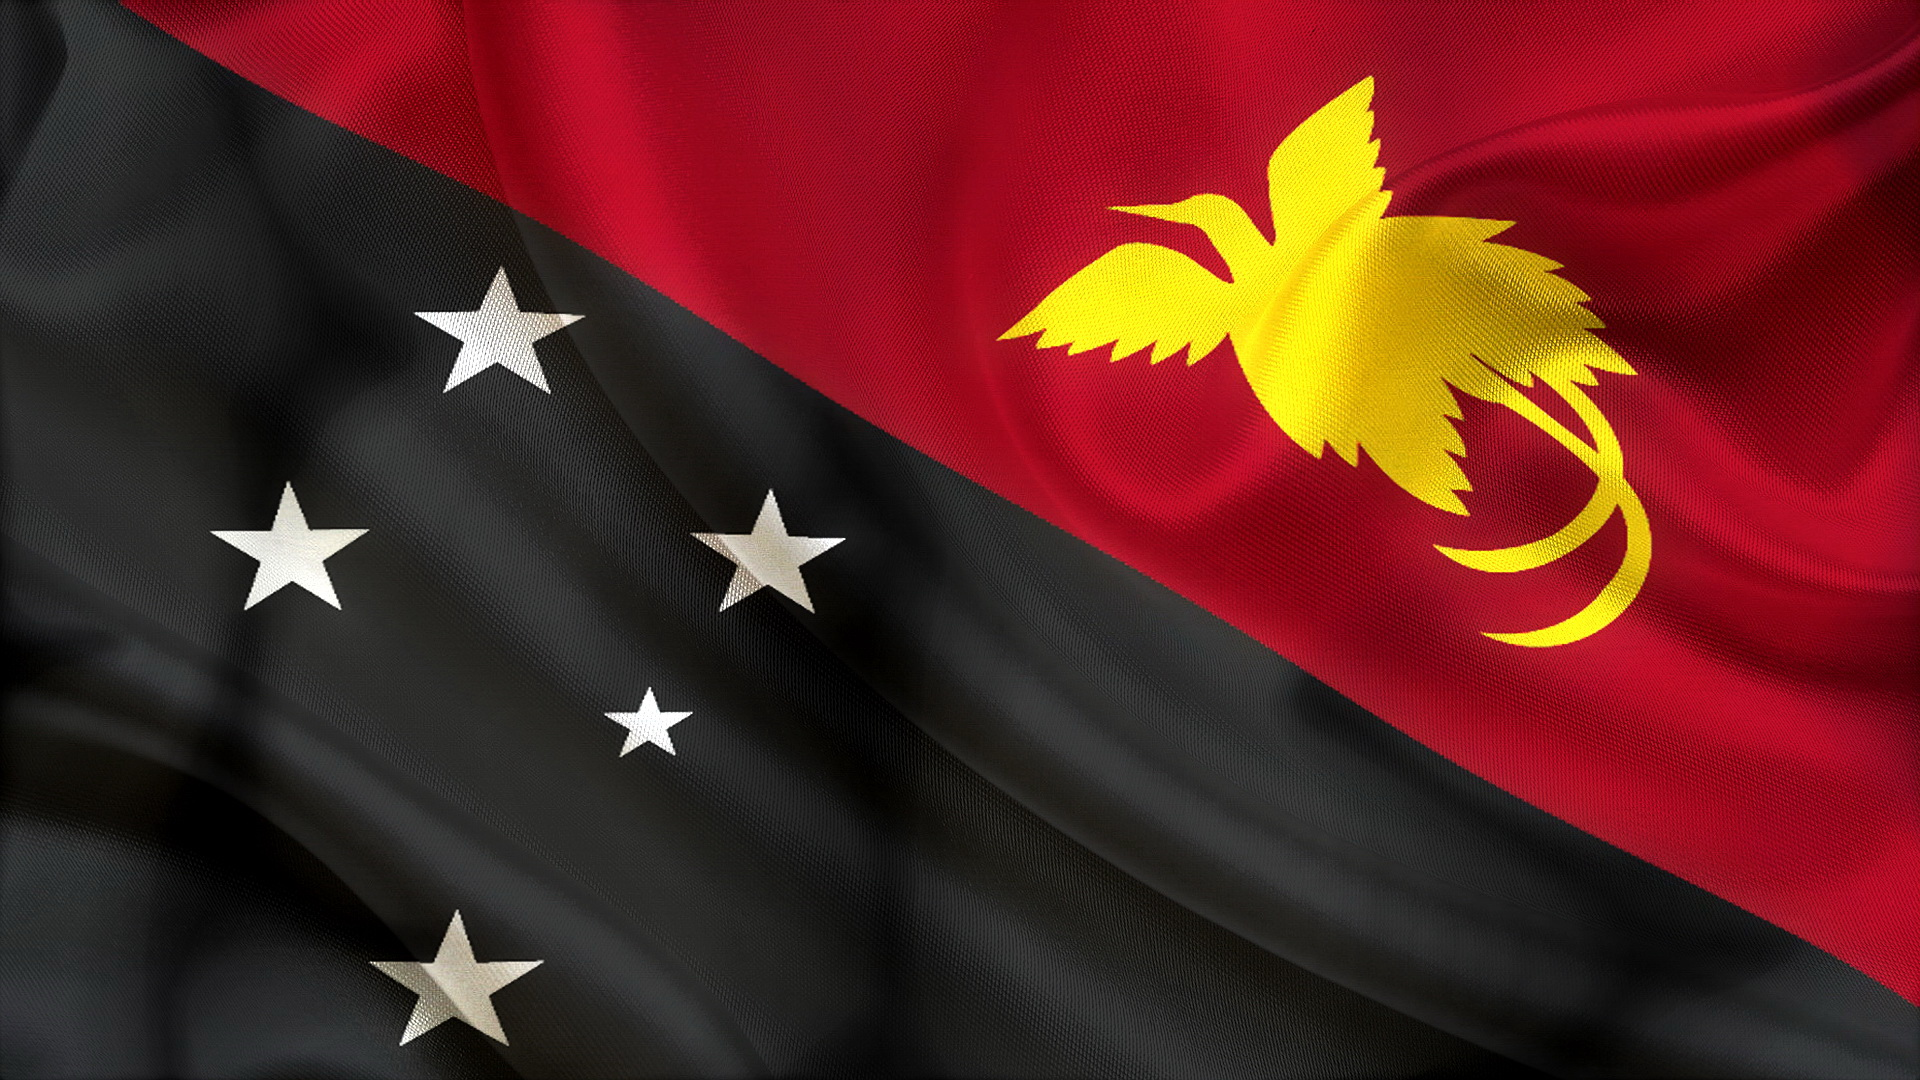 Papua New Guinea Flag wallpaper 1920x1080 98225 WallpaperUP 1920x1080